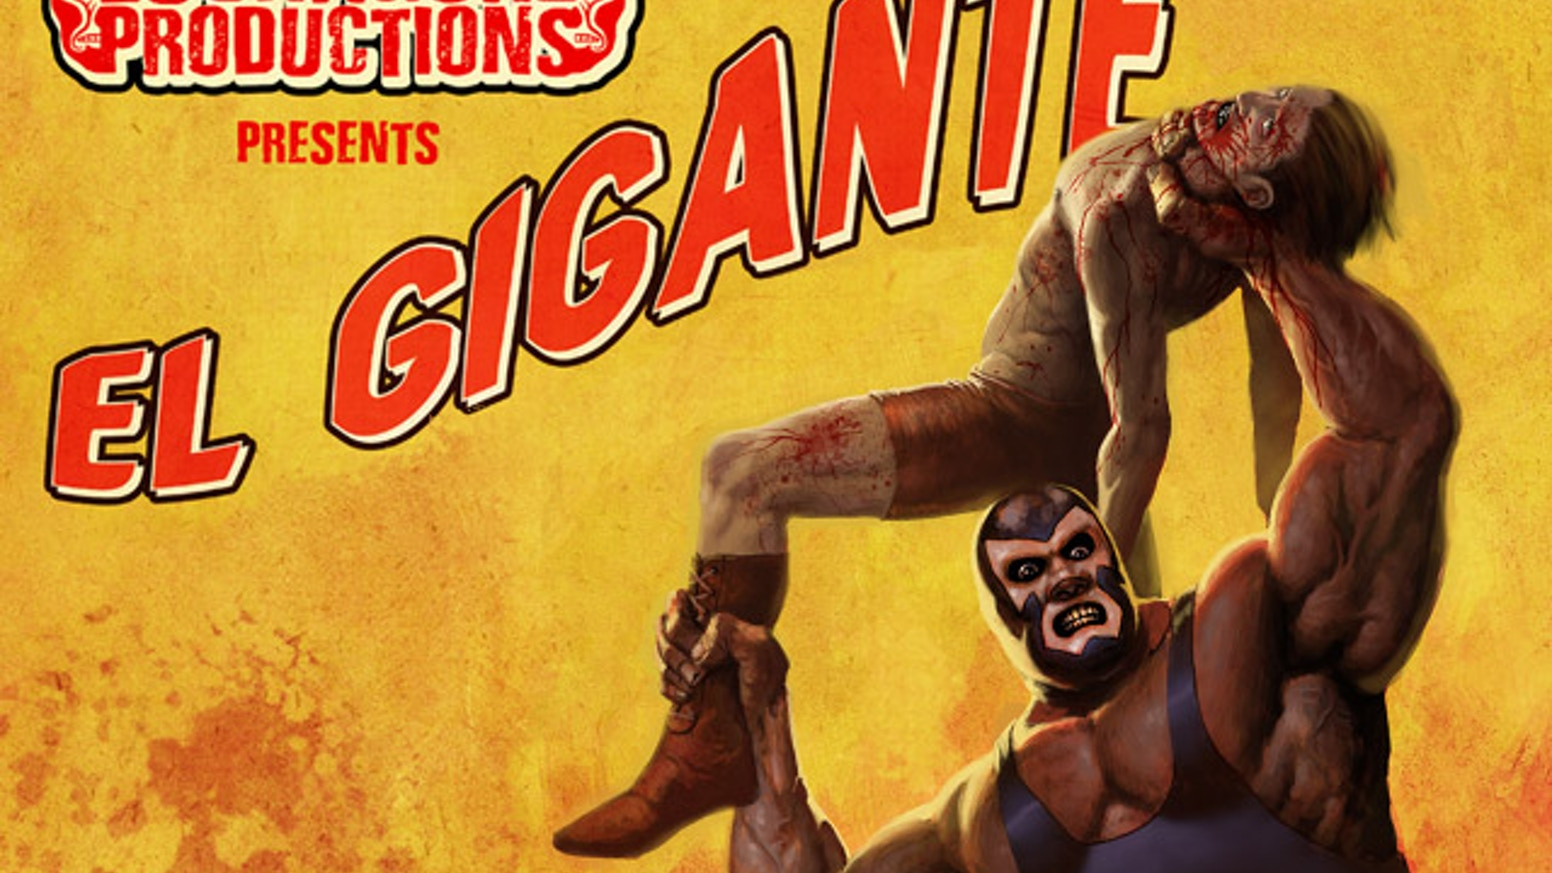 El Gigante is the Texas Chainsaw Massacre with a crazy Mexican twist.